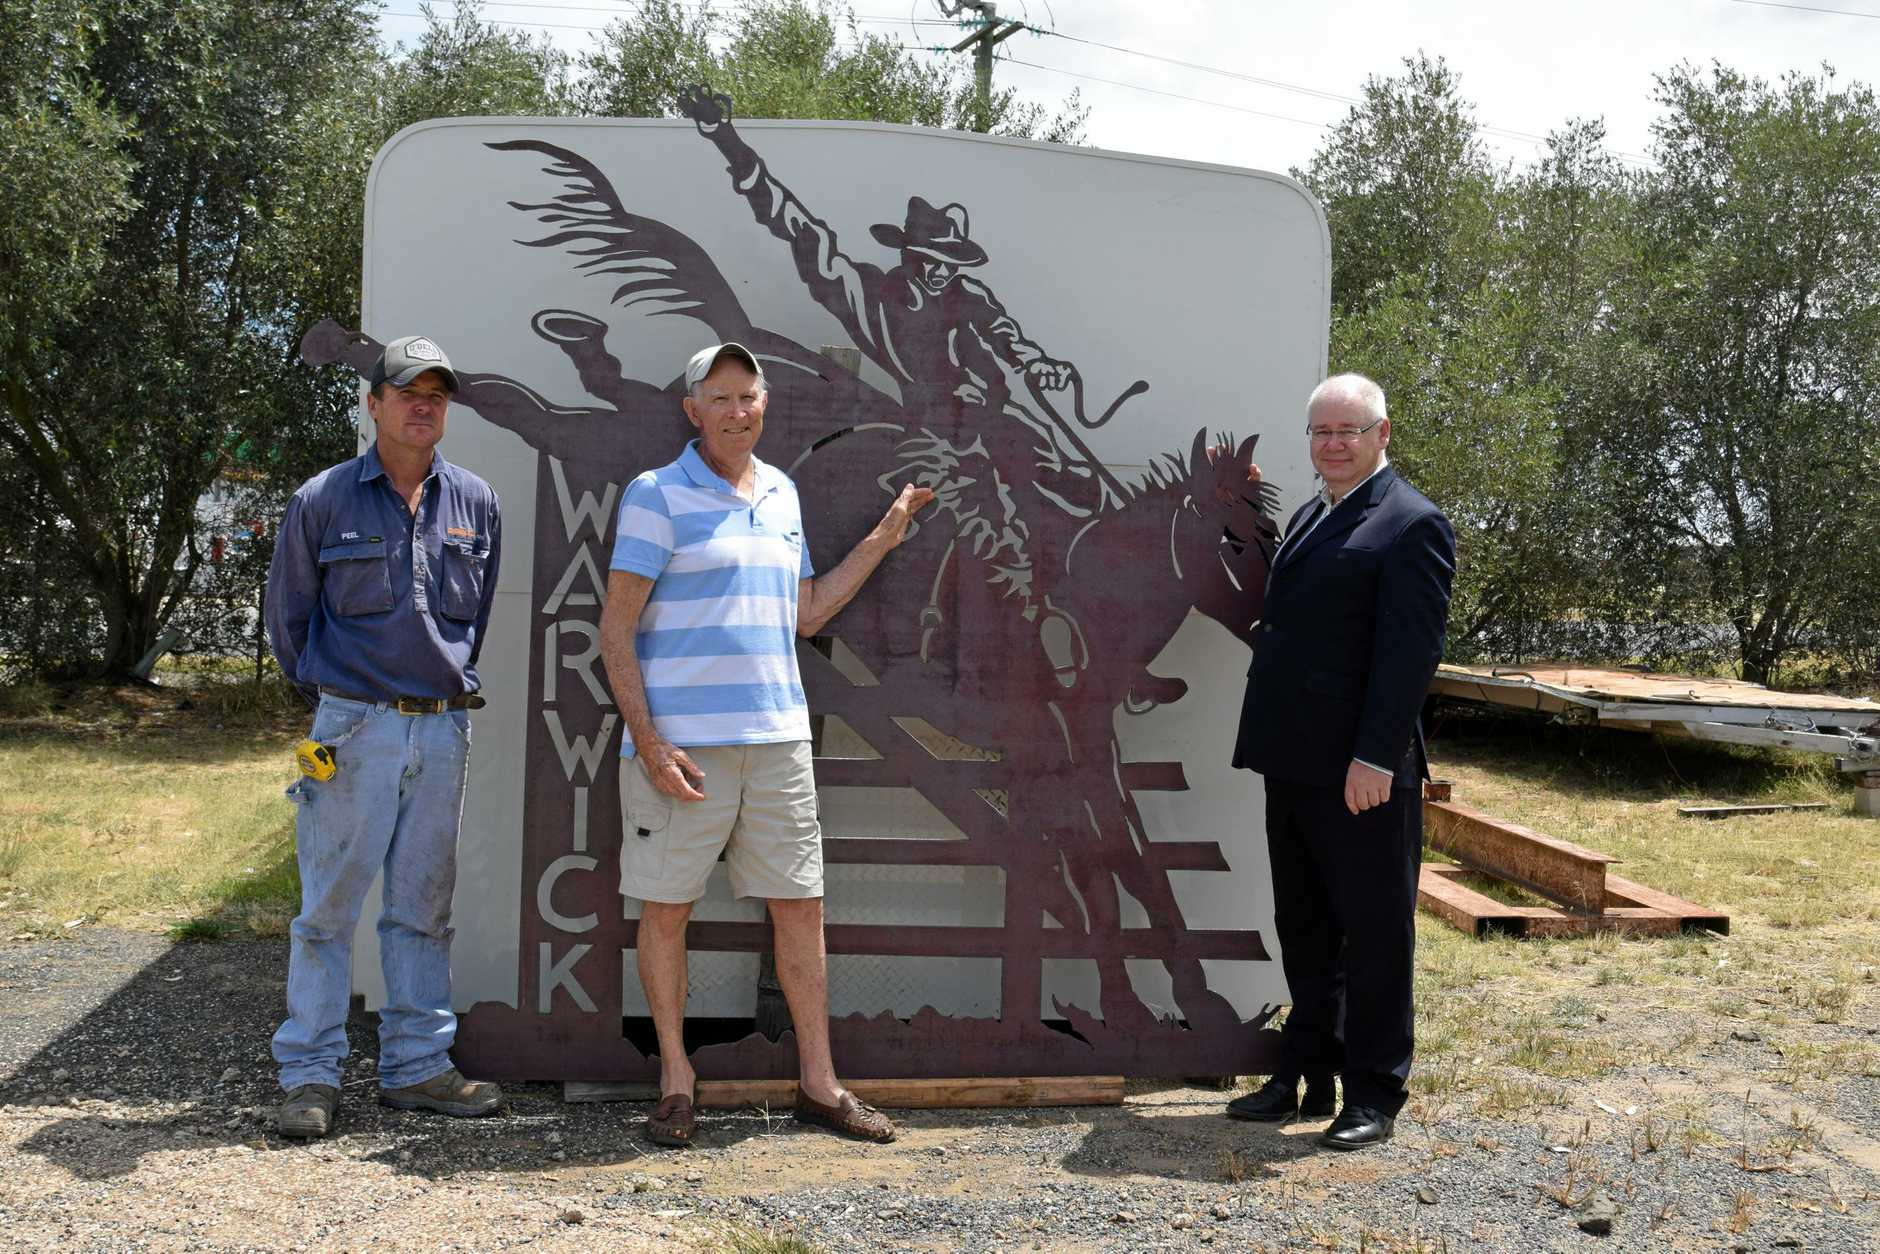 John Simpson (centre) with Condamine Steel and Rural owner Peel Tribe and Warwick Credit Union CEO Lewis von Stieglitz with a piece of the equine artwork.